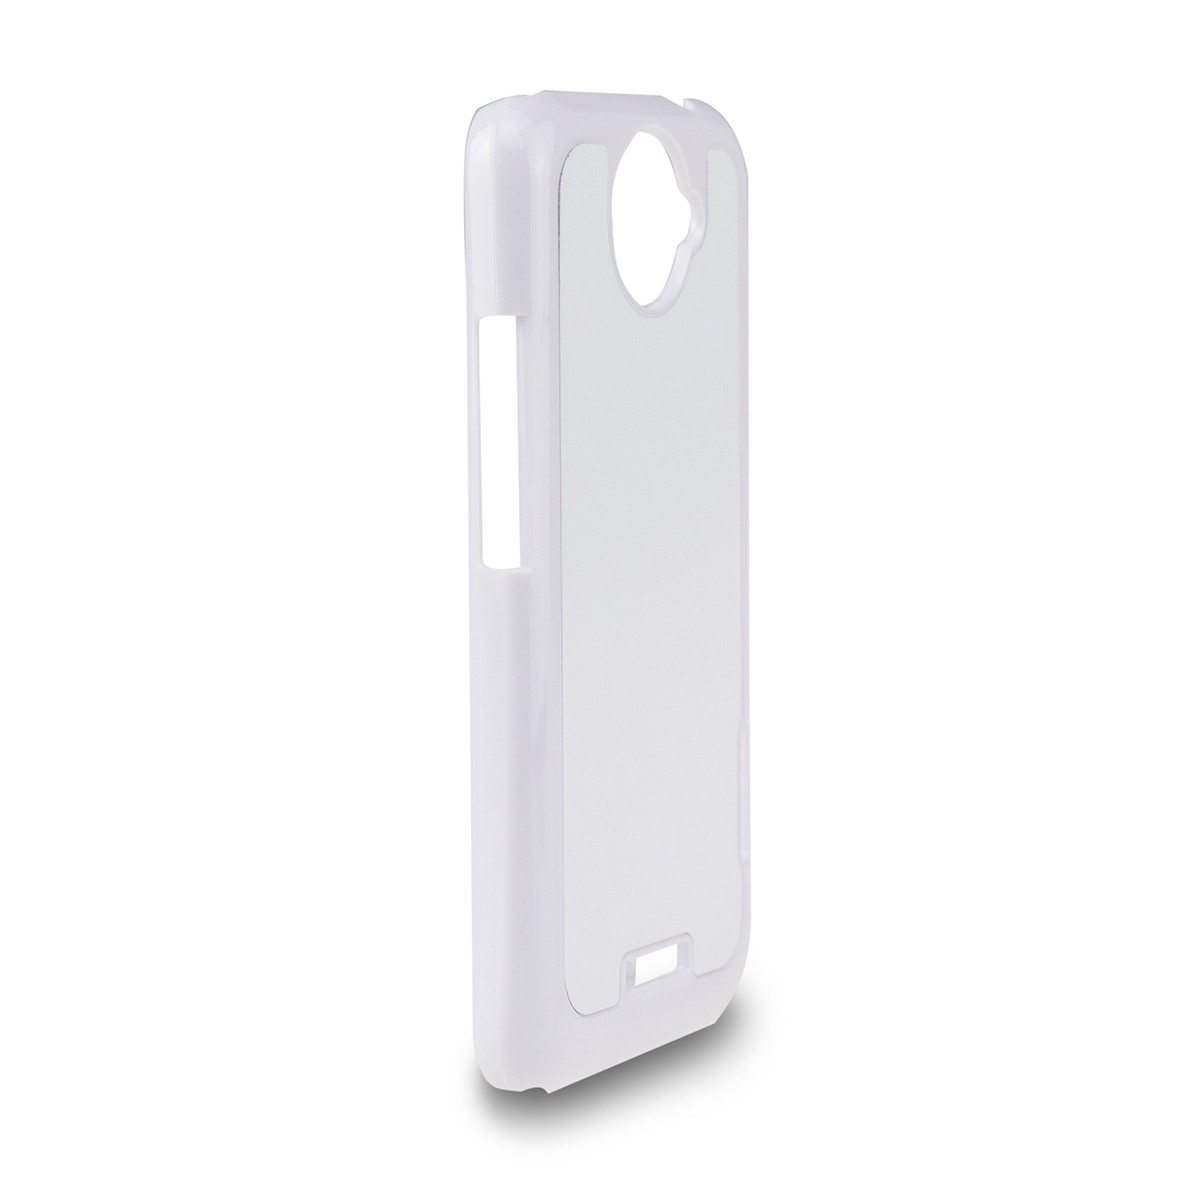 Coque HTC One X blanche personnalisée